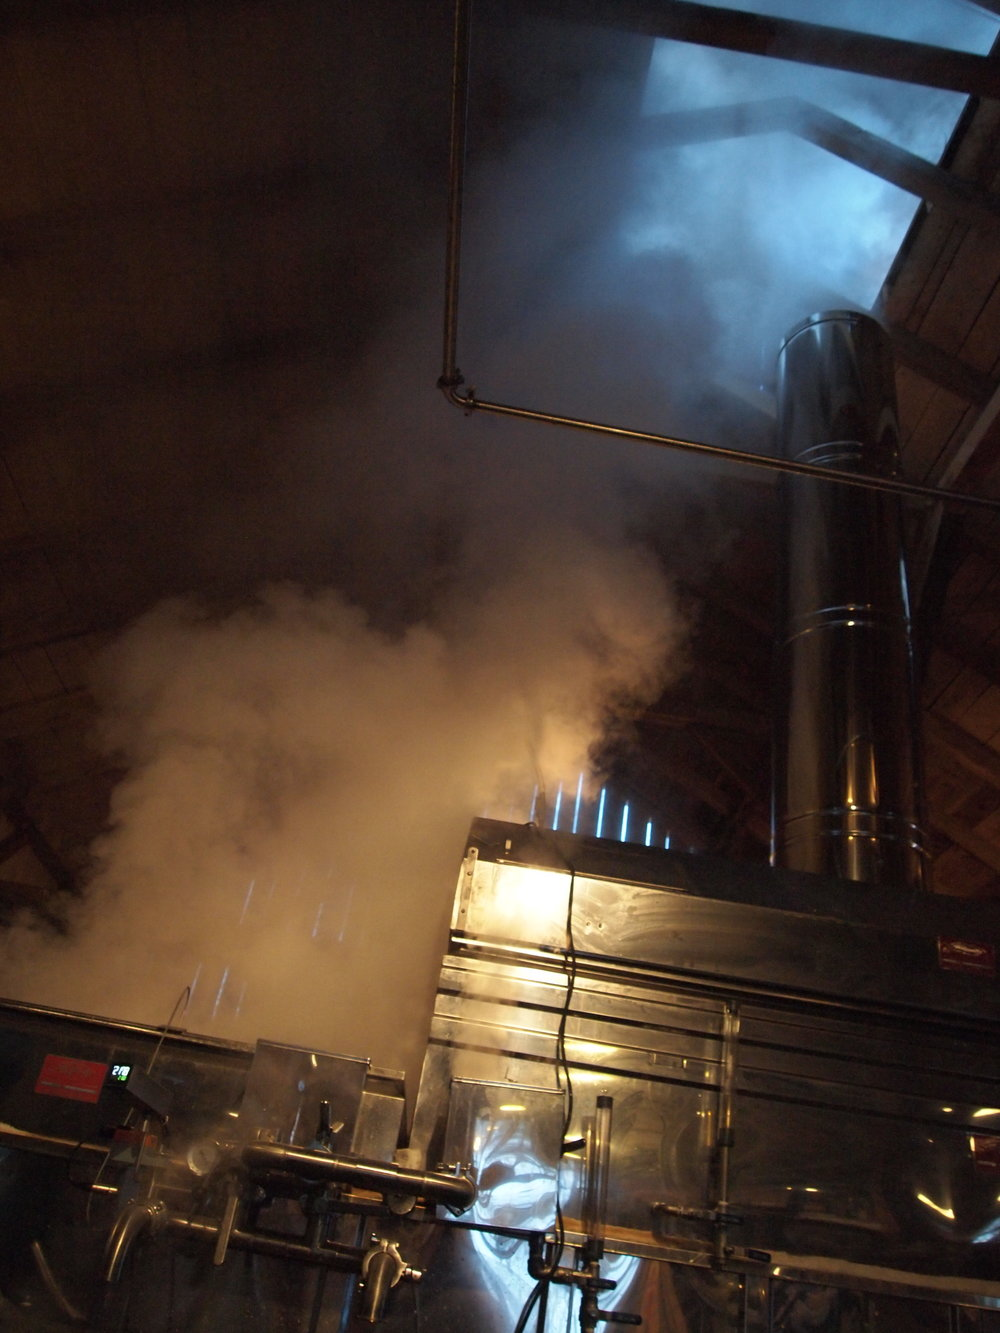 STEAM LEAVING THROUGH THE CUPOLA